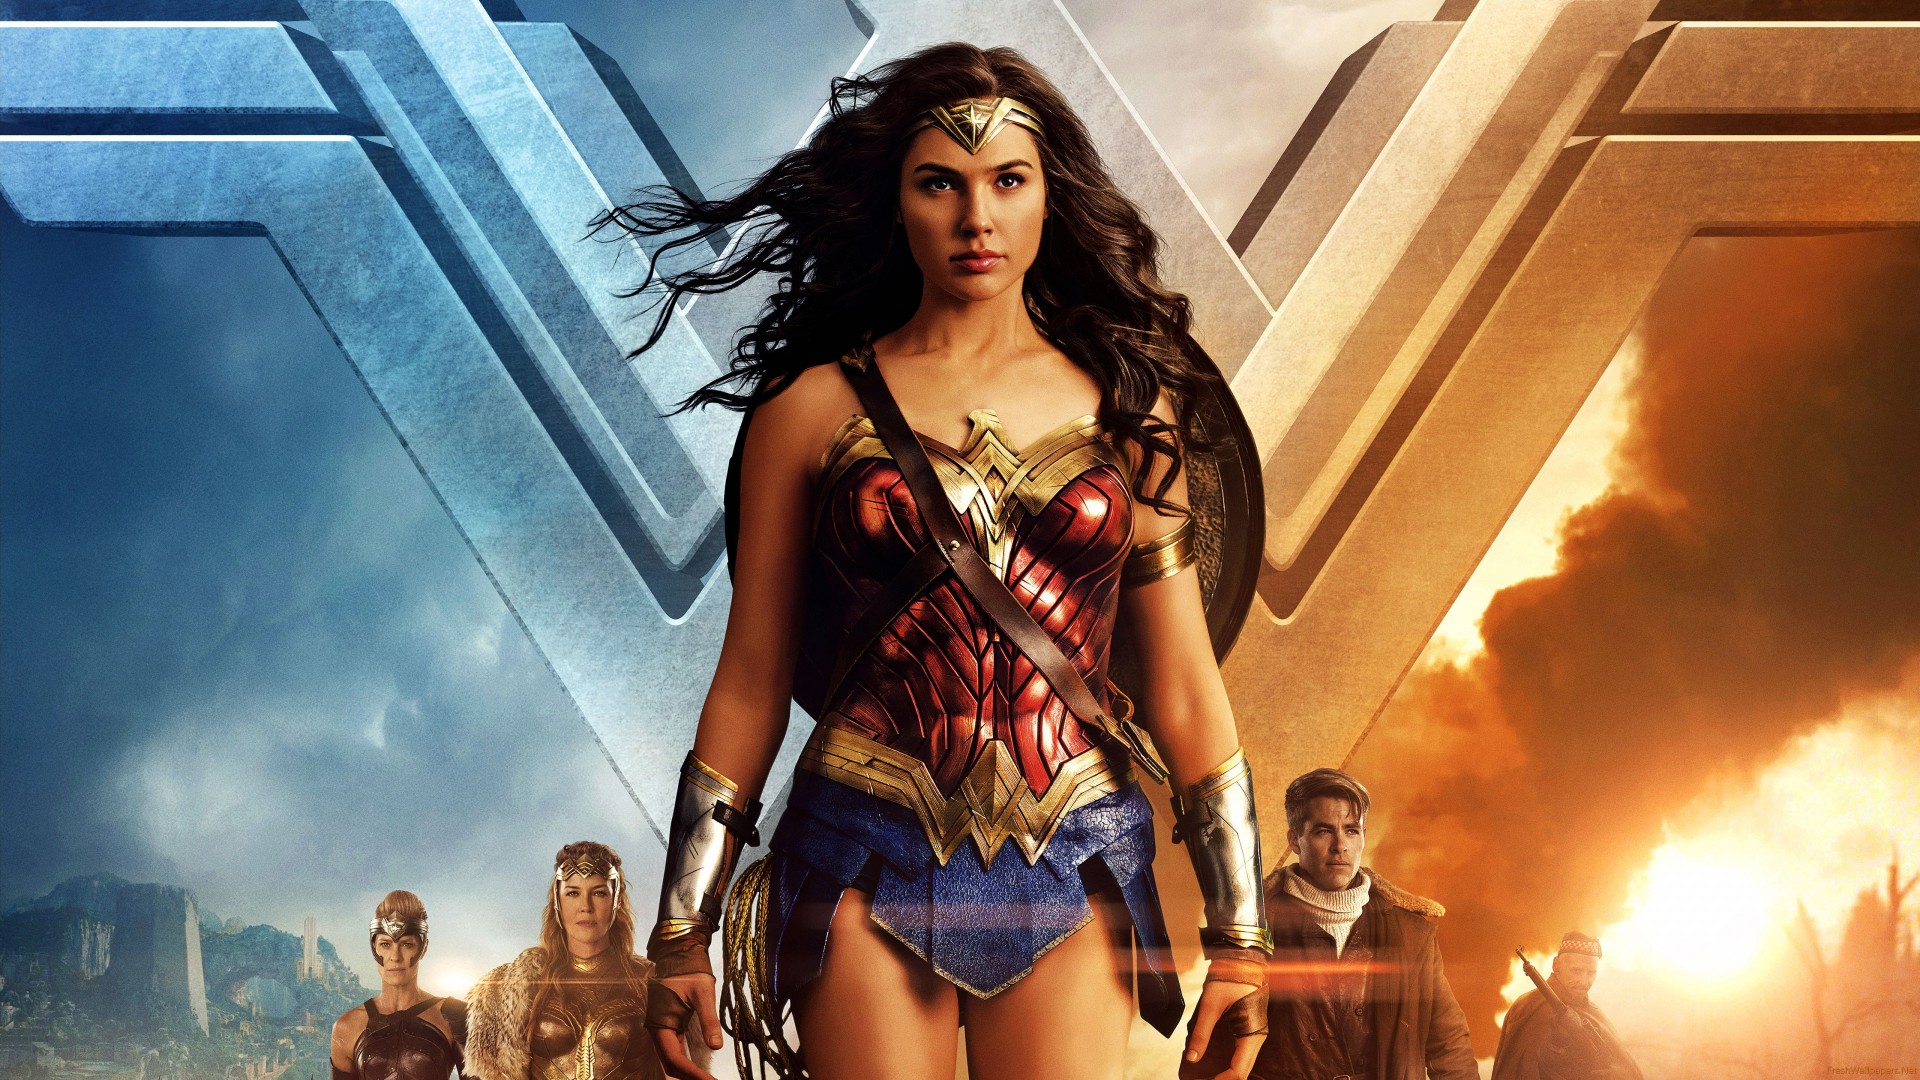 Wonder Woman Sequel to Adopt New PGA Anti-Sexual Harrassment Policies